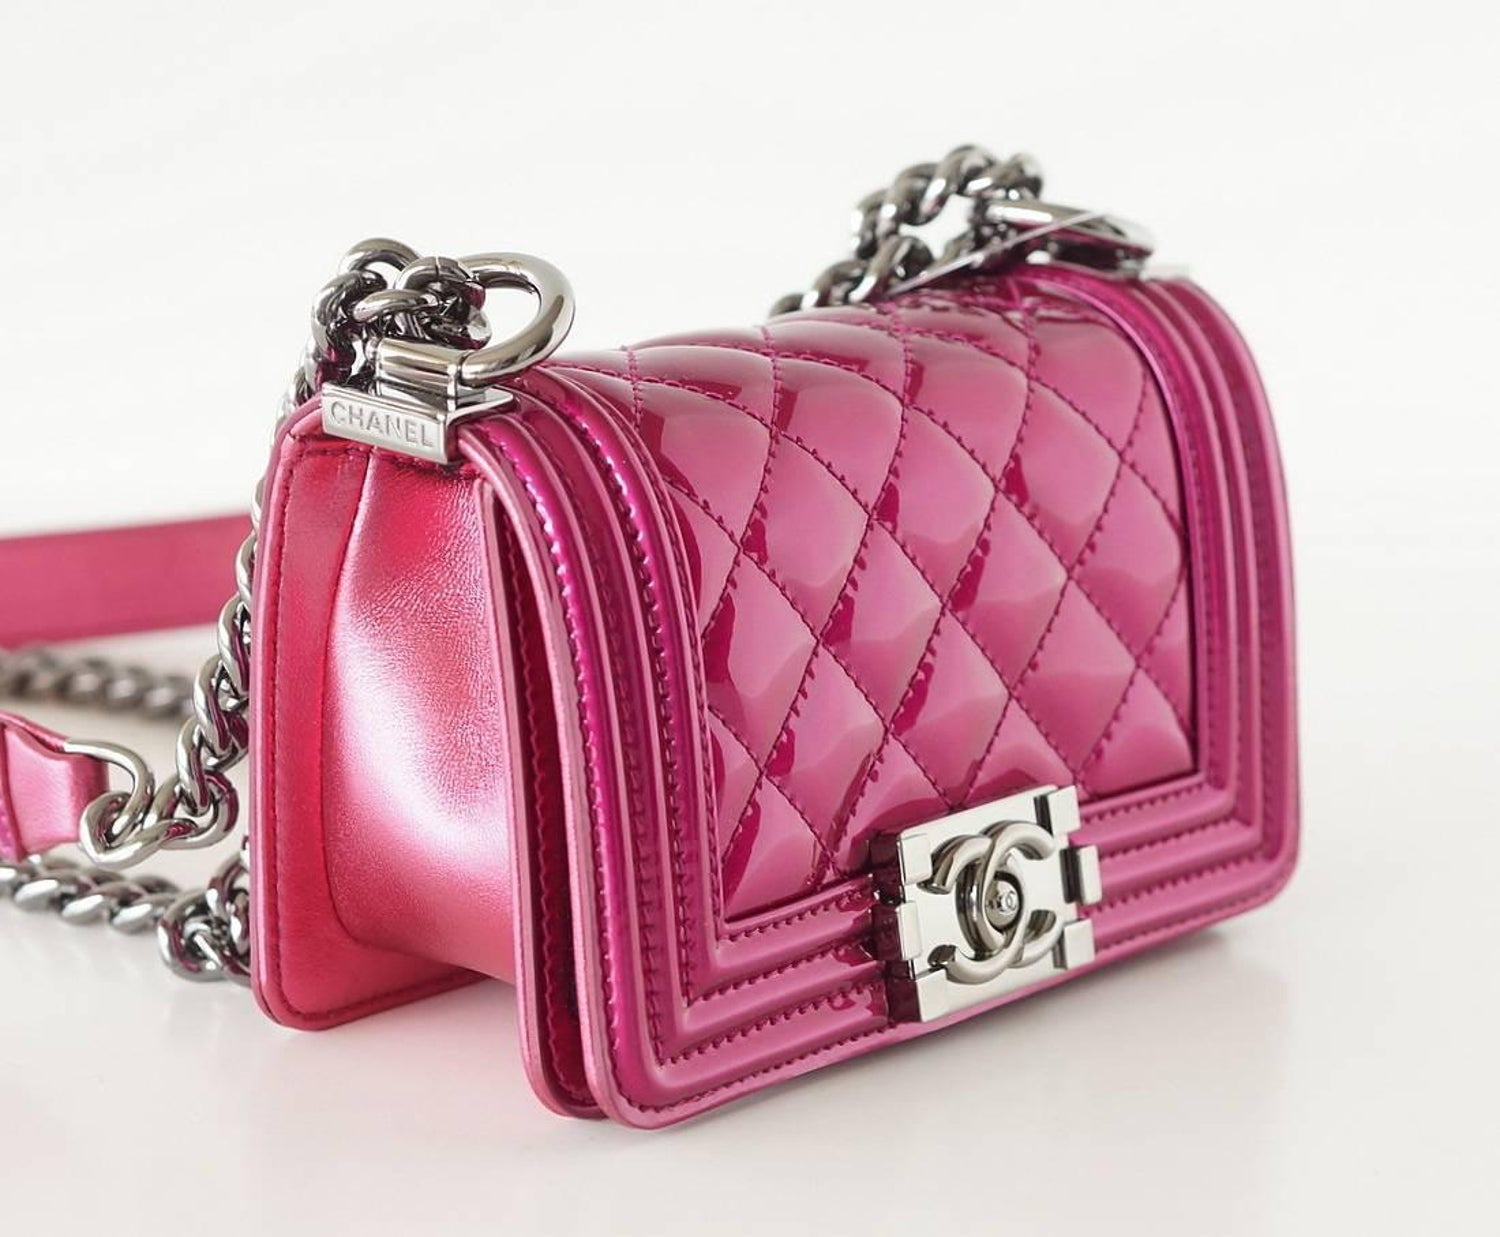 00c4b5d91607d3 Chanel Mini Boy Metallic Patent Fuchsia Crossbody Bag at 1stdibs